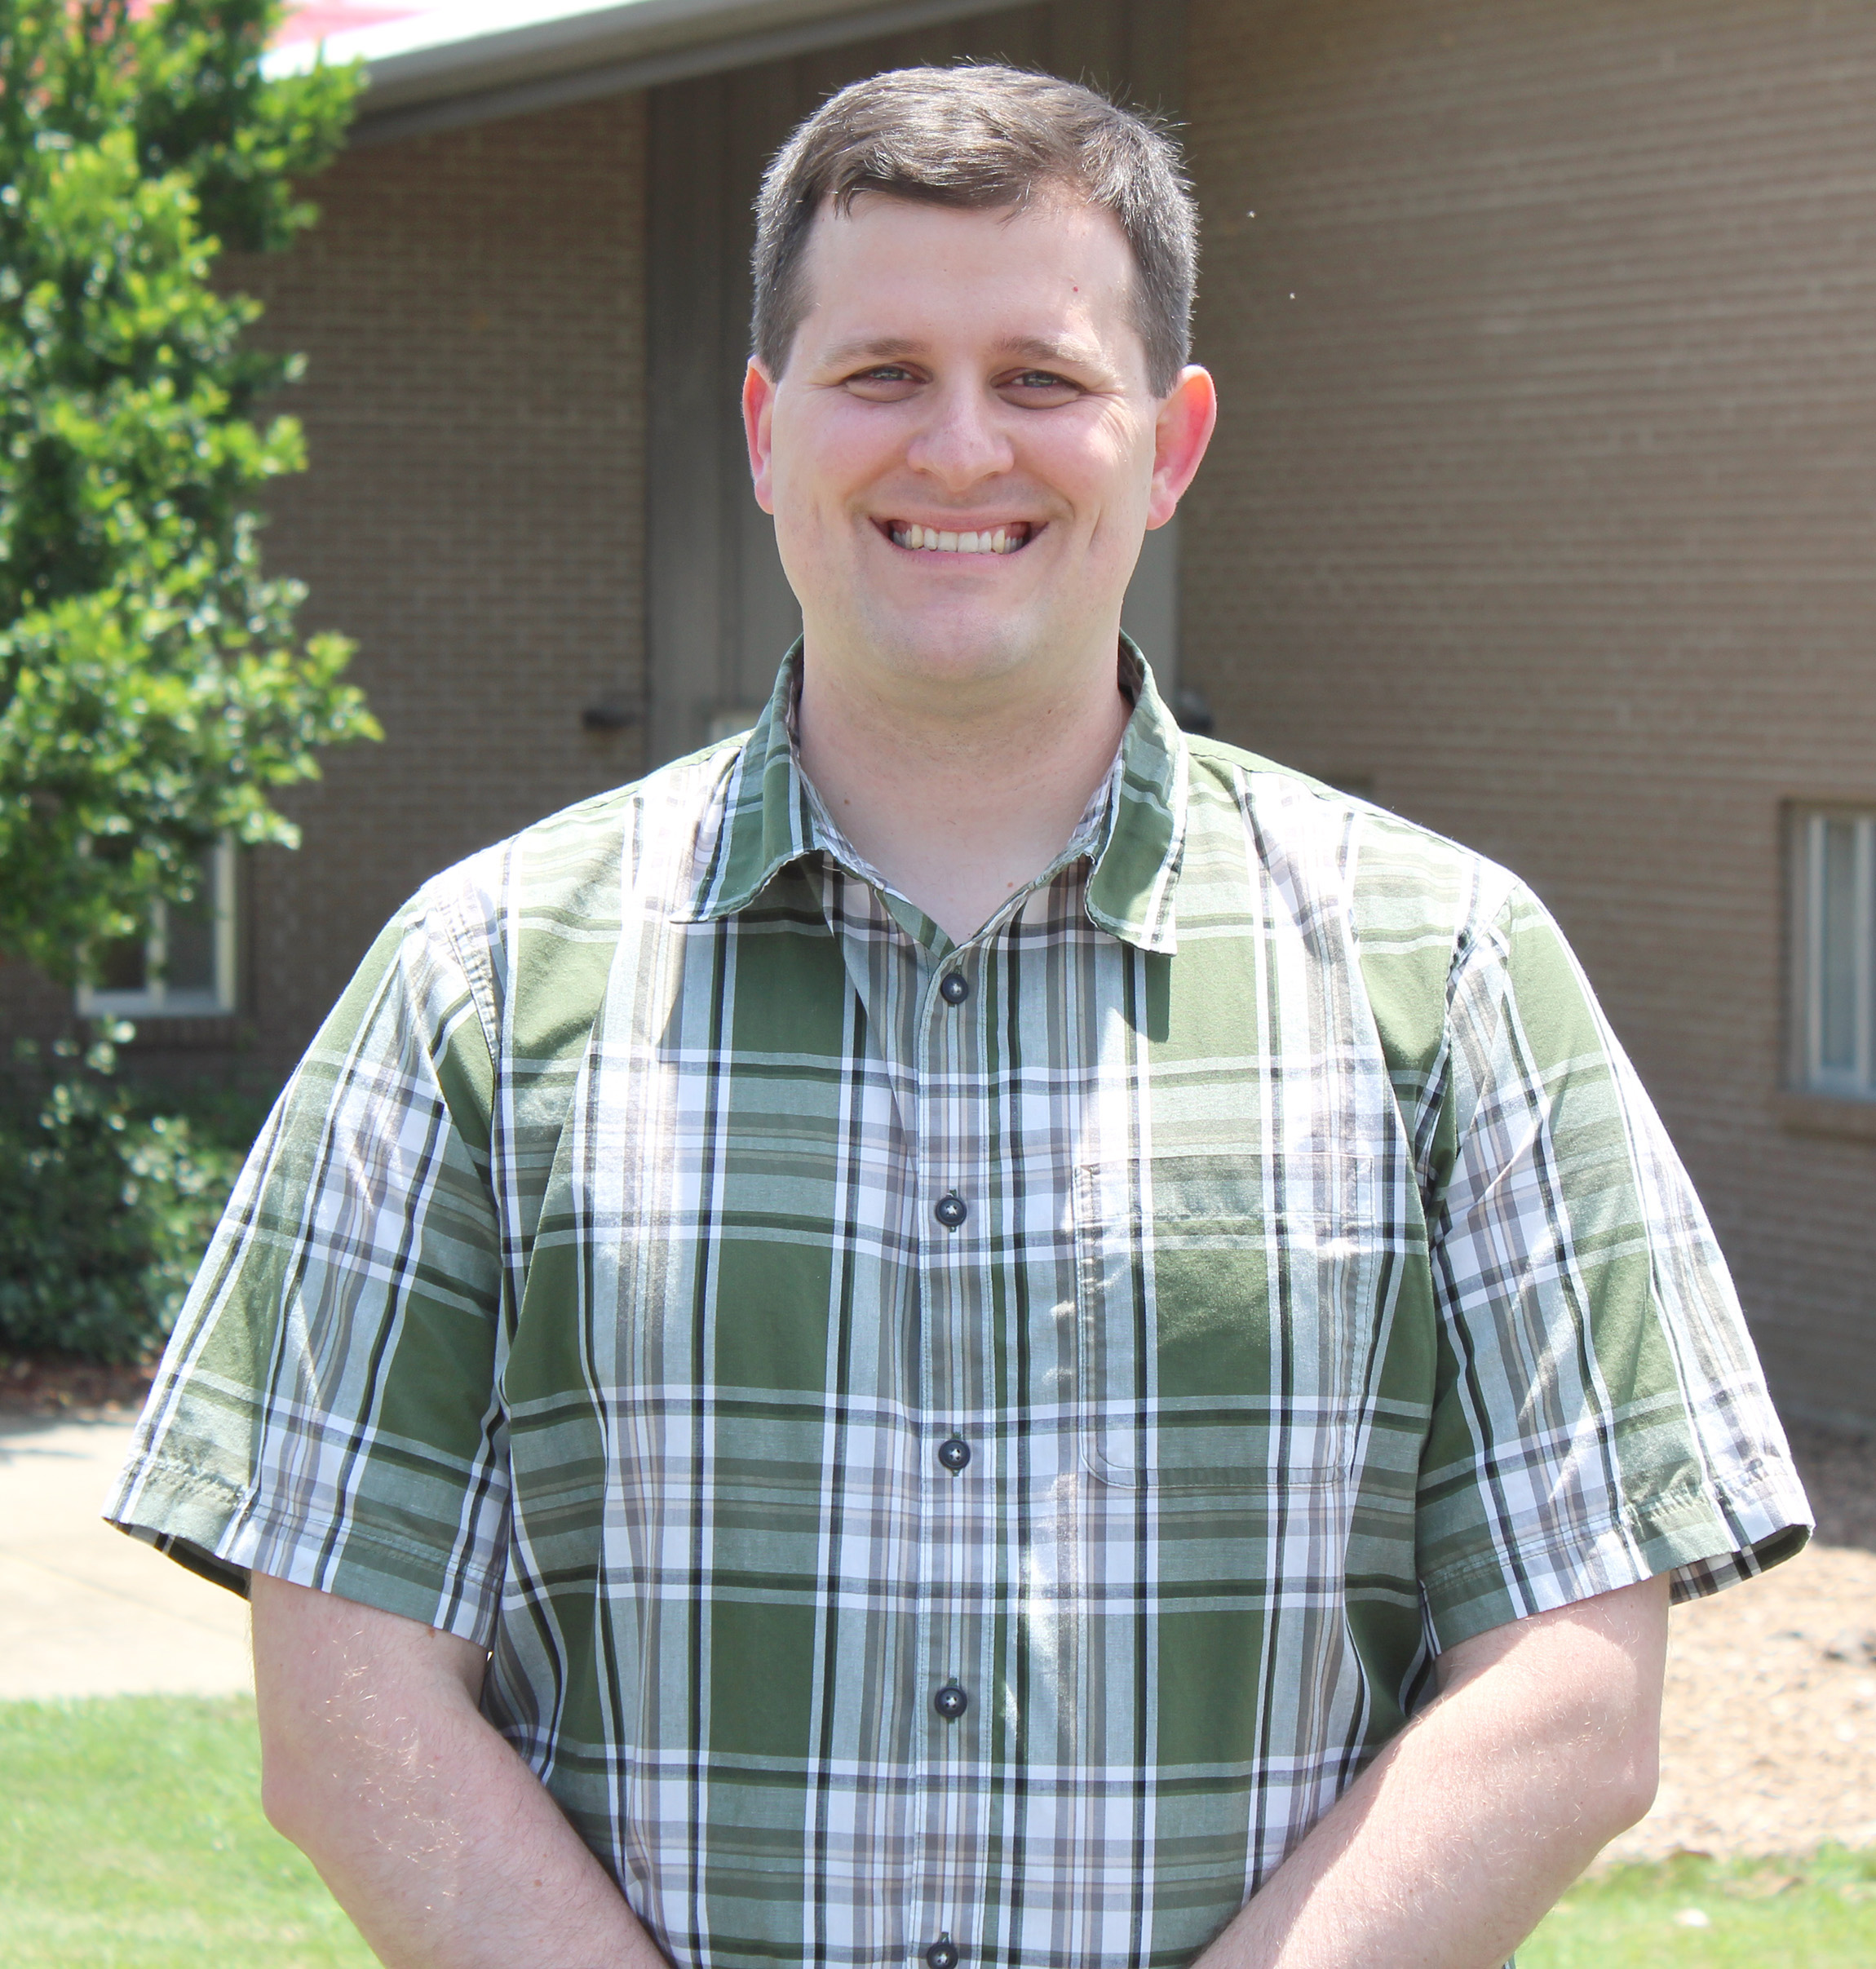 Jonathan Oliver is a small fruit pathologist specializing in blueberries, blackberries, citrus and other fruits with the University of Georgia.